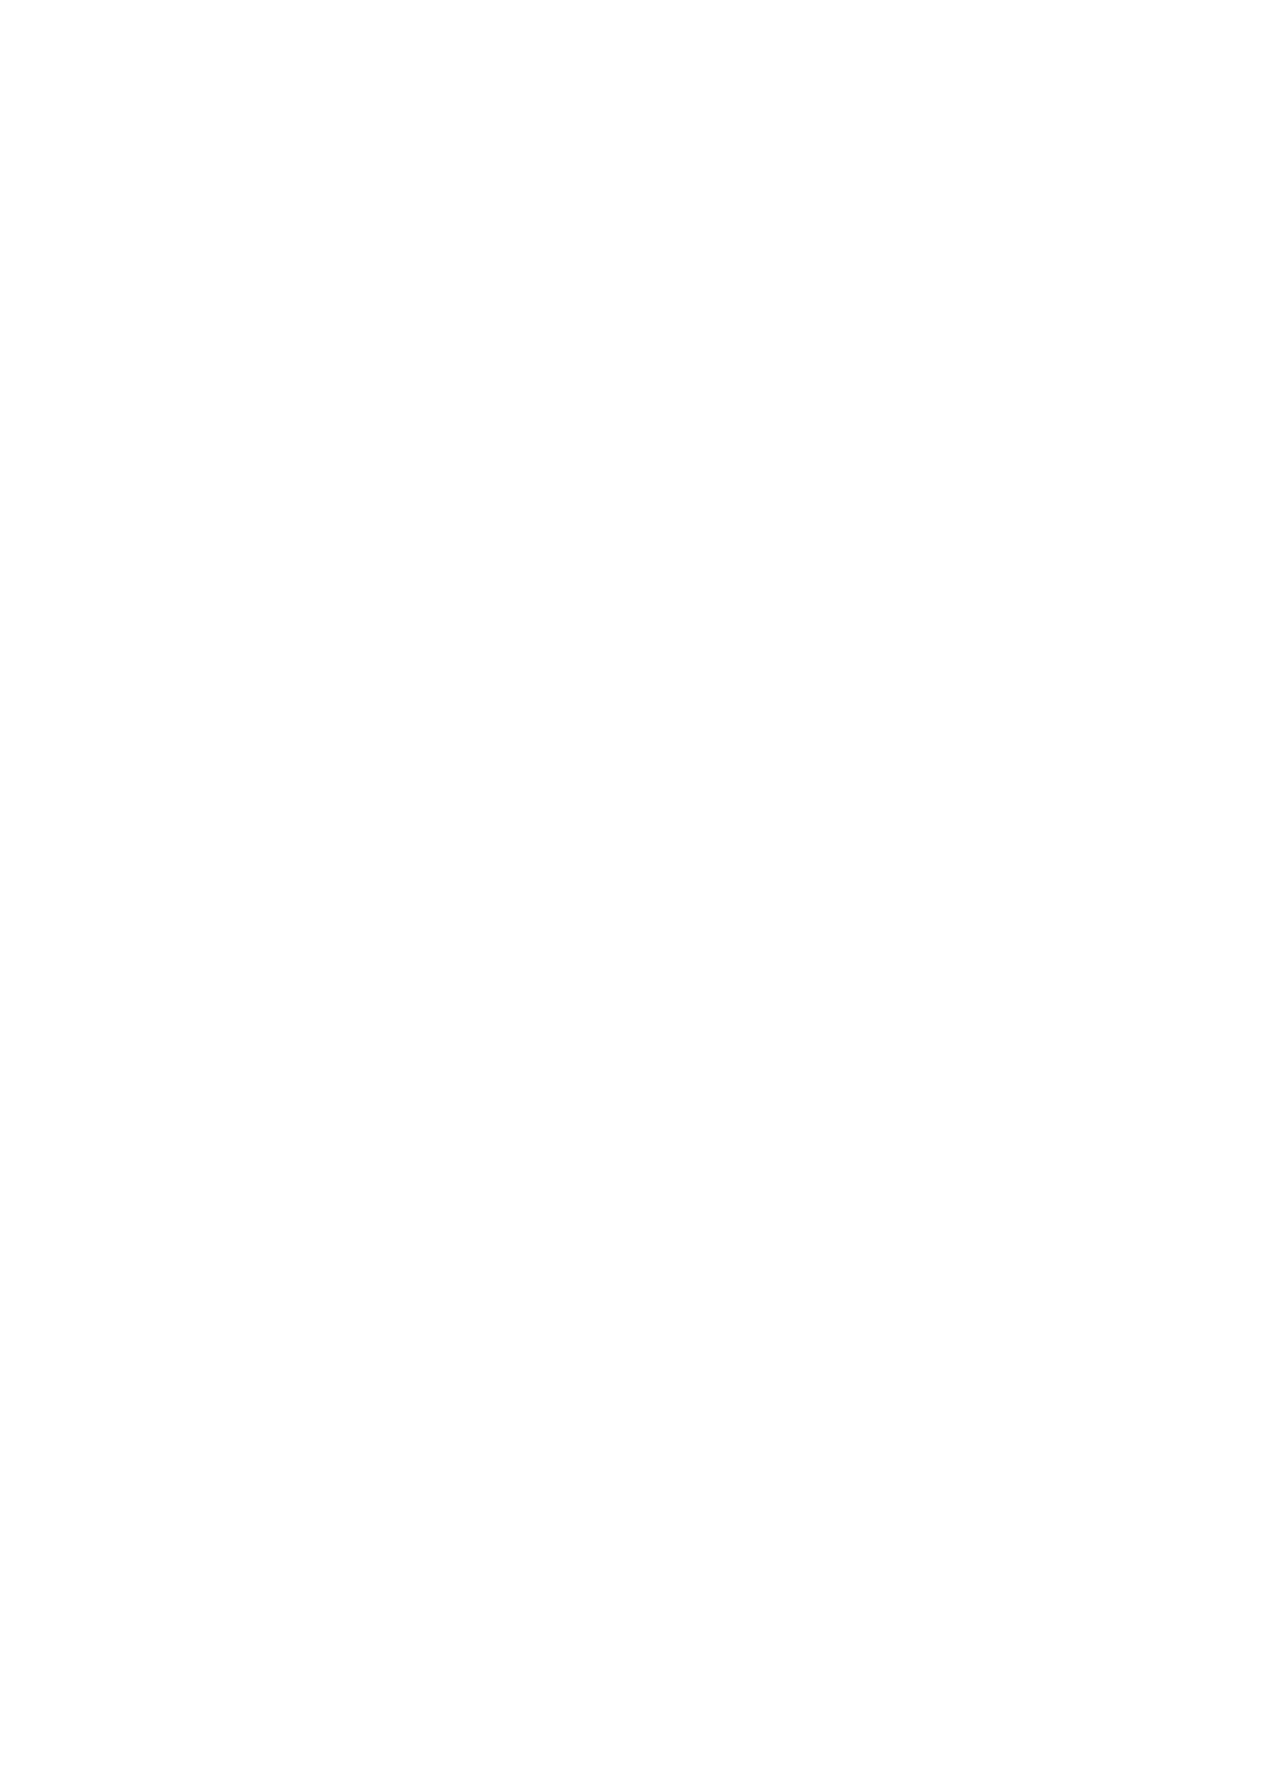 https://digital.tessmann.it/mediaArchive/media/image/Page/SV/1978/03_11_1978/SV_1978_11_03_1_object_2560340.png?auth=bc251162c6eaa8961b149ce4f196e553